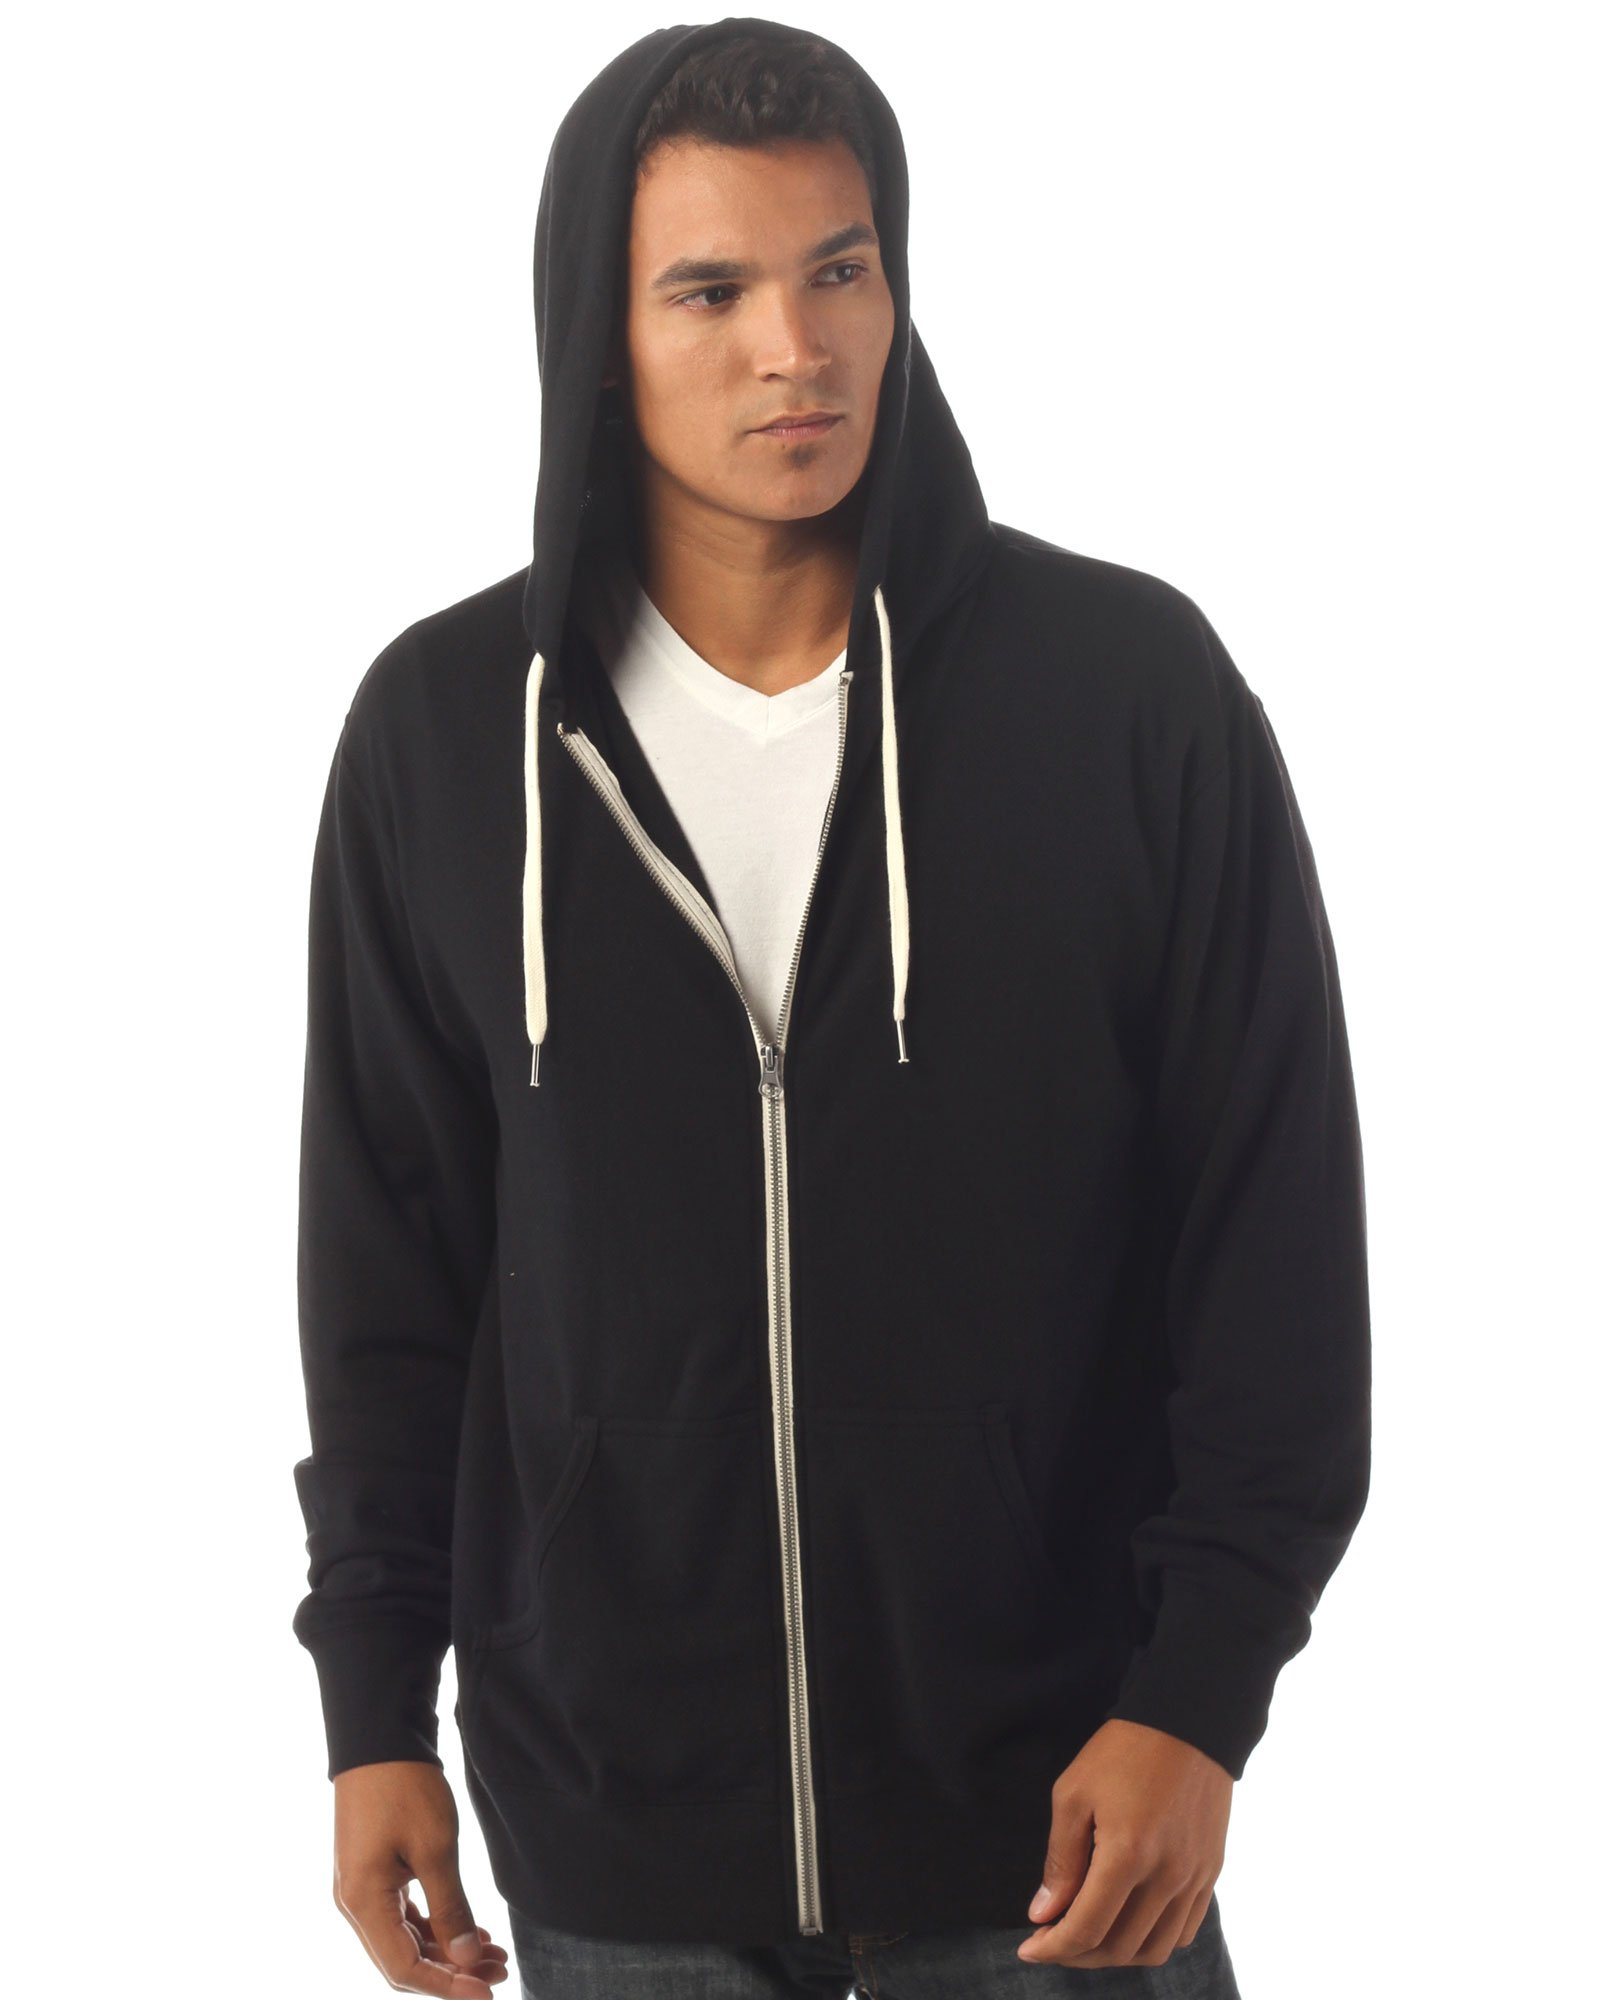 Slim Fit French Terry Lightweight Zip up Hoodie for Men and Women S Solid Black